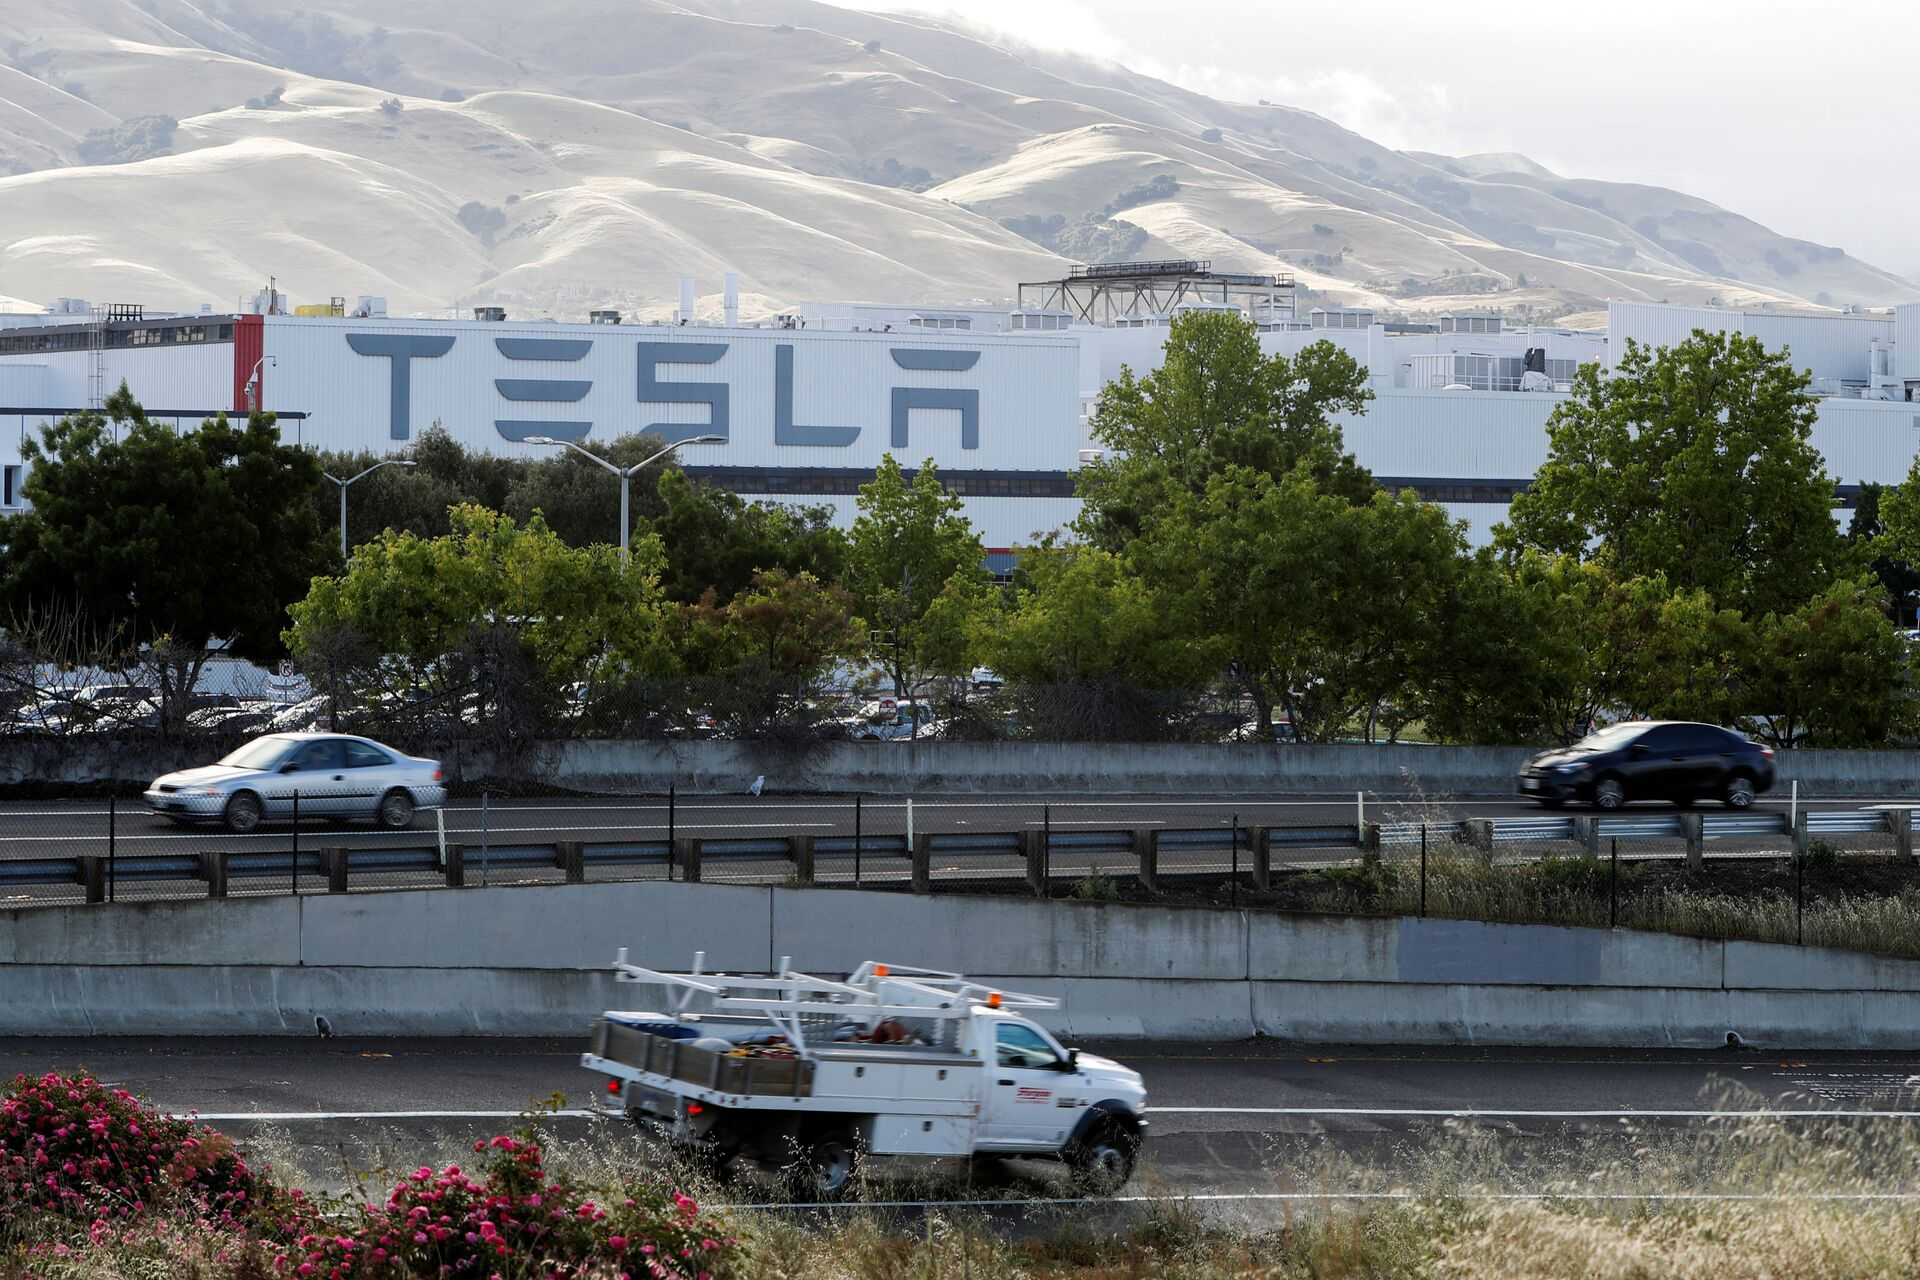 Motorists drive past Tesla's primary vehicle factory after CEO Elon Musk announced he was defying local officials' restrictions against the spread of the coronavirus disease (COVID-19) by reopening the plant in Fremont, California, U.S. May 12, 2020 - Sputnik International, 1920, 07.09.2021